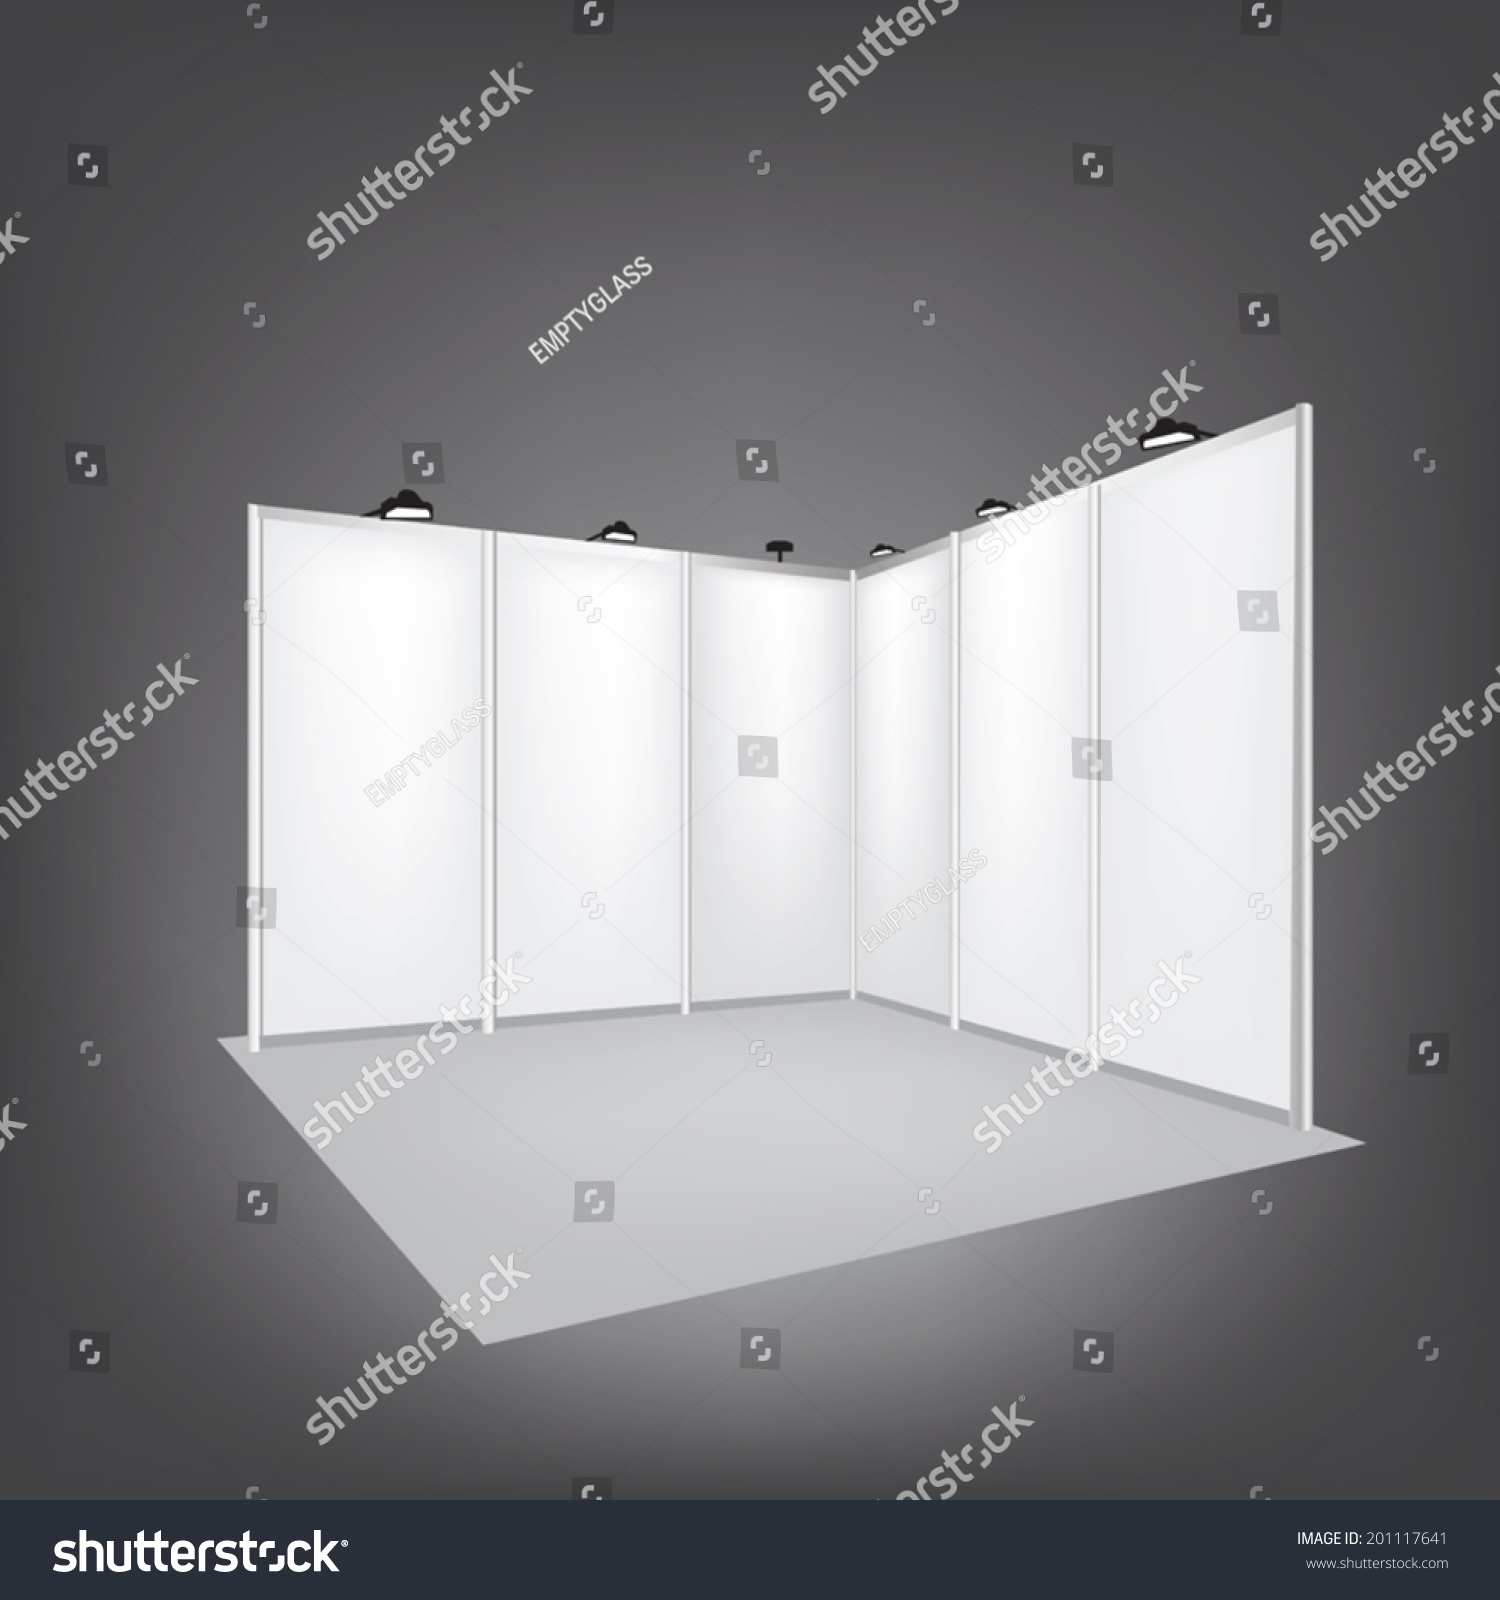 Simple Exhibition Stand Vector : Vector blank trade exhibition stand shutterstock